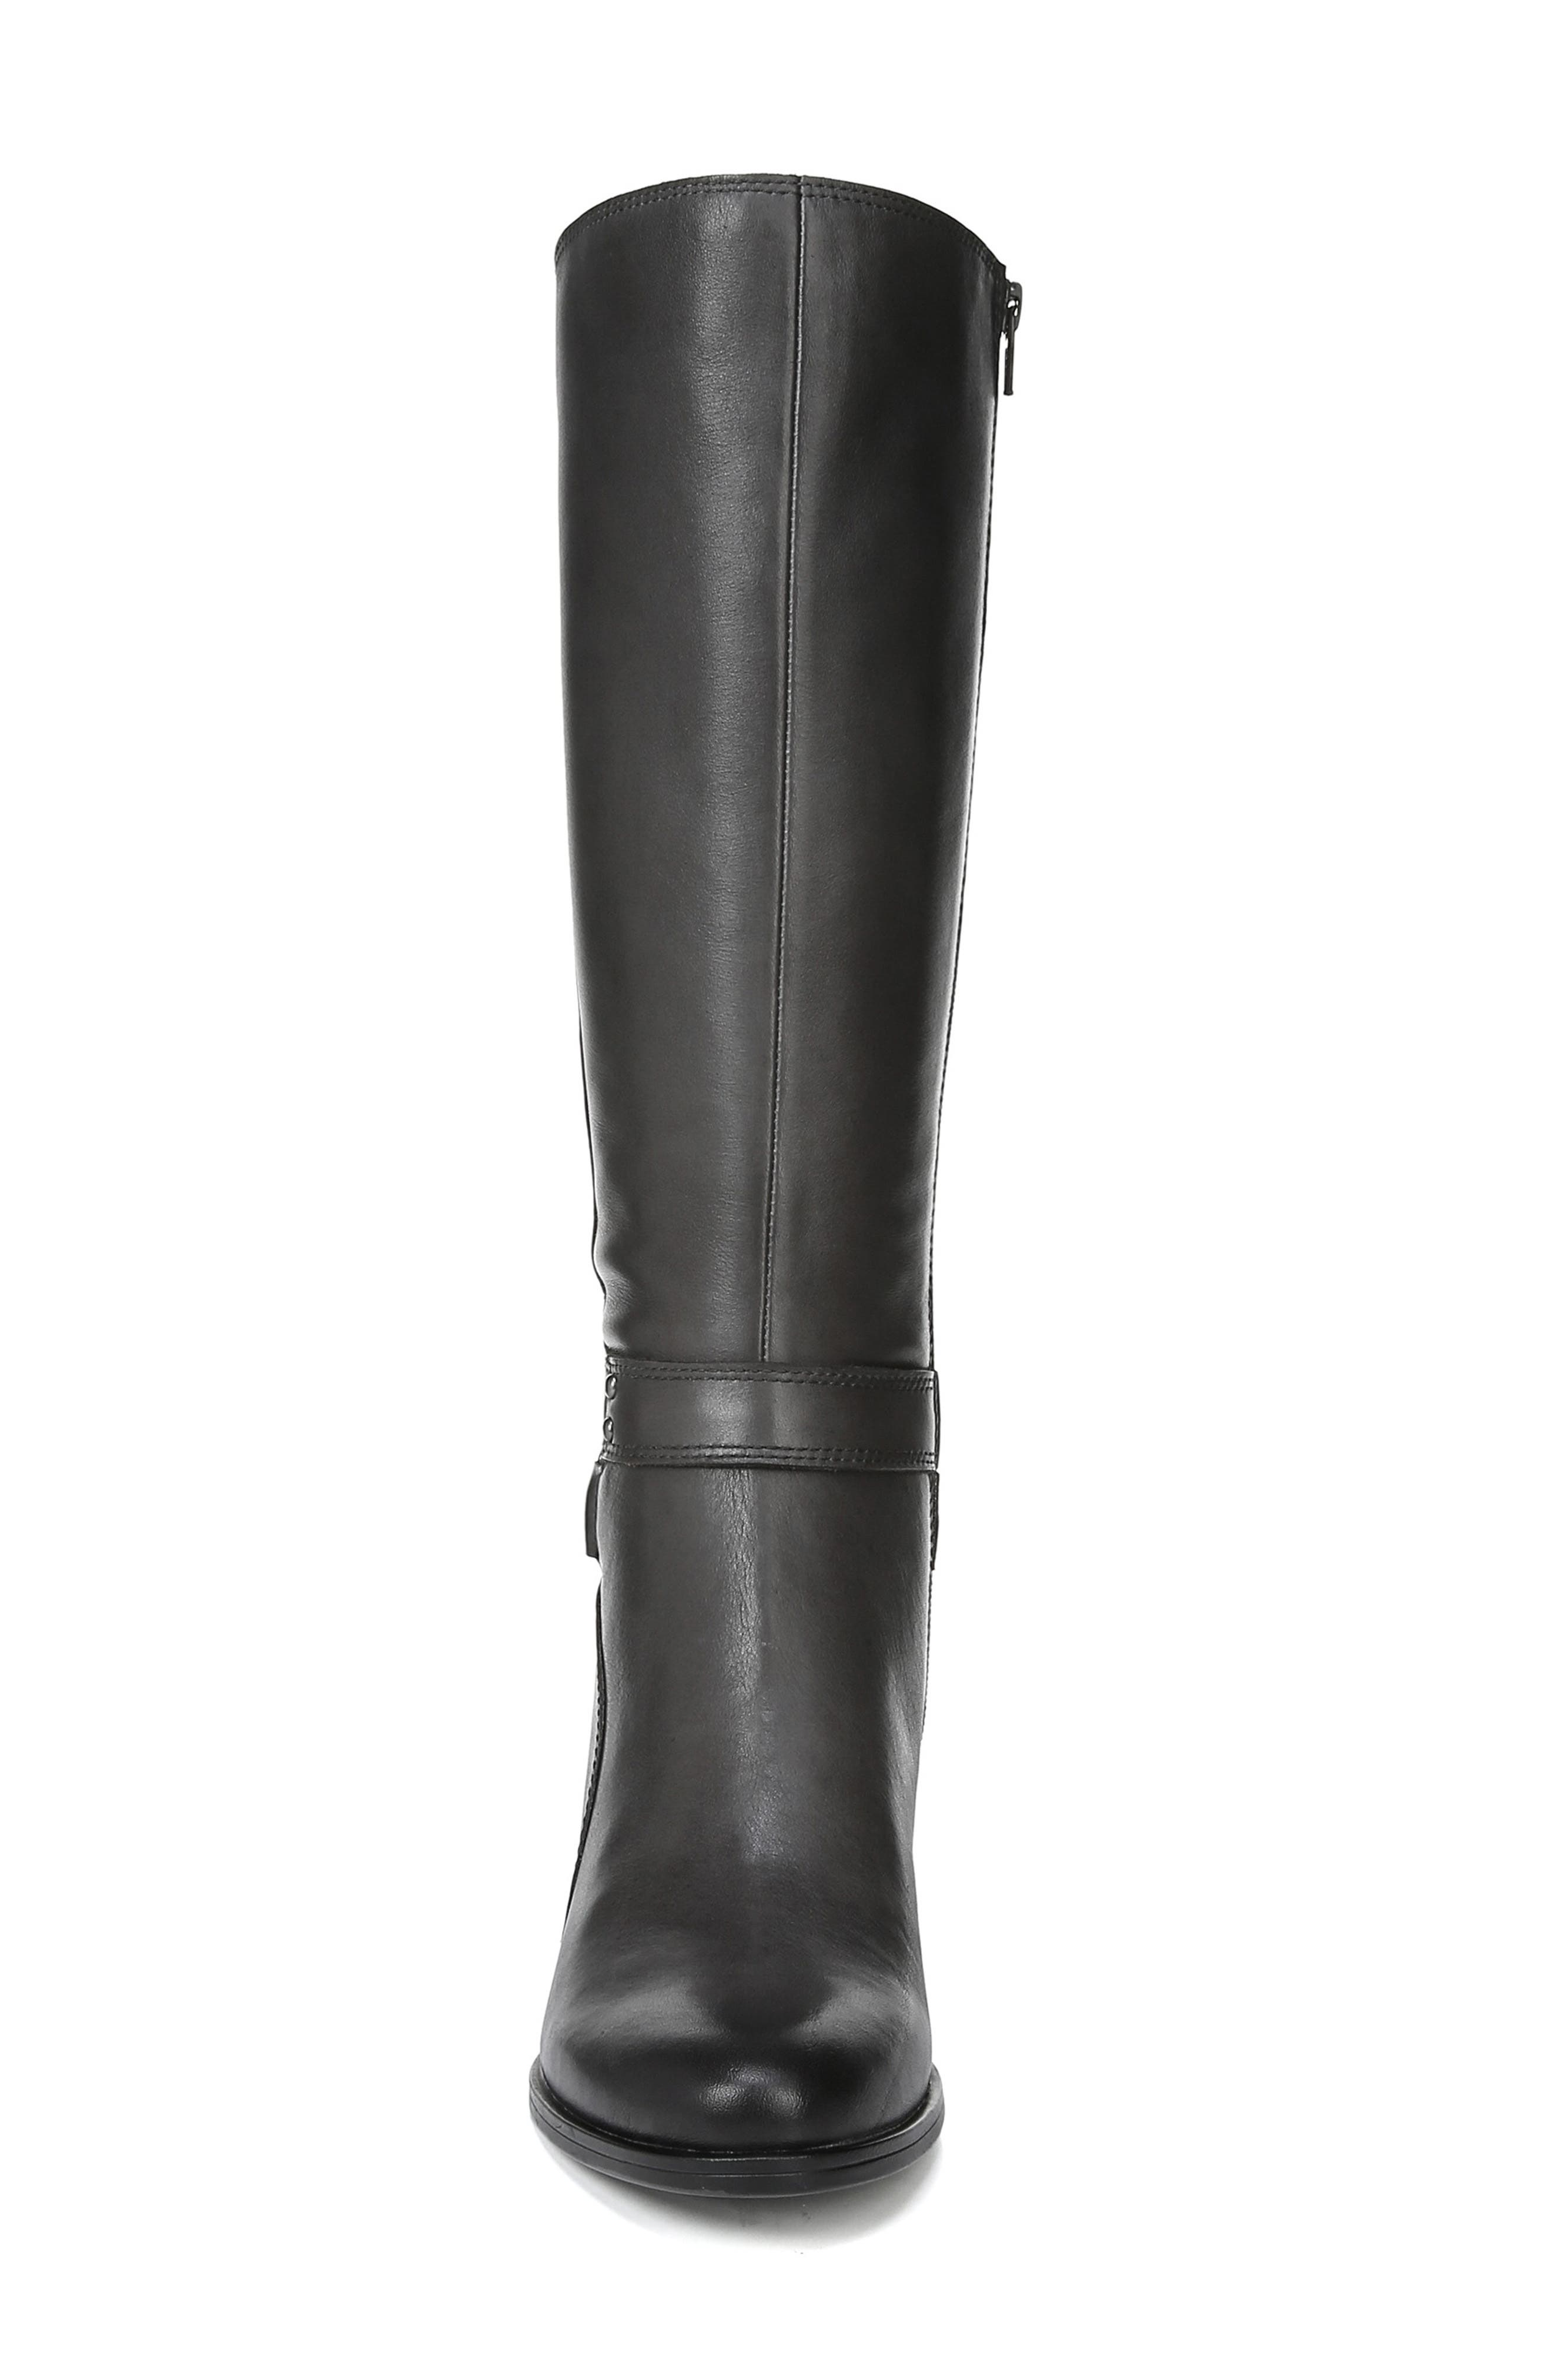 Dane Knee High Riding Boot,                             Alternate thumbnail 4, color,                             GREY LEATHER